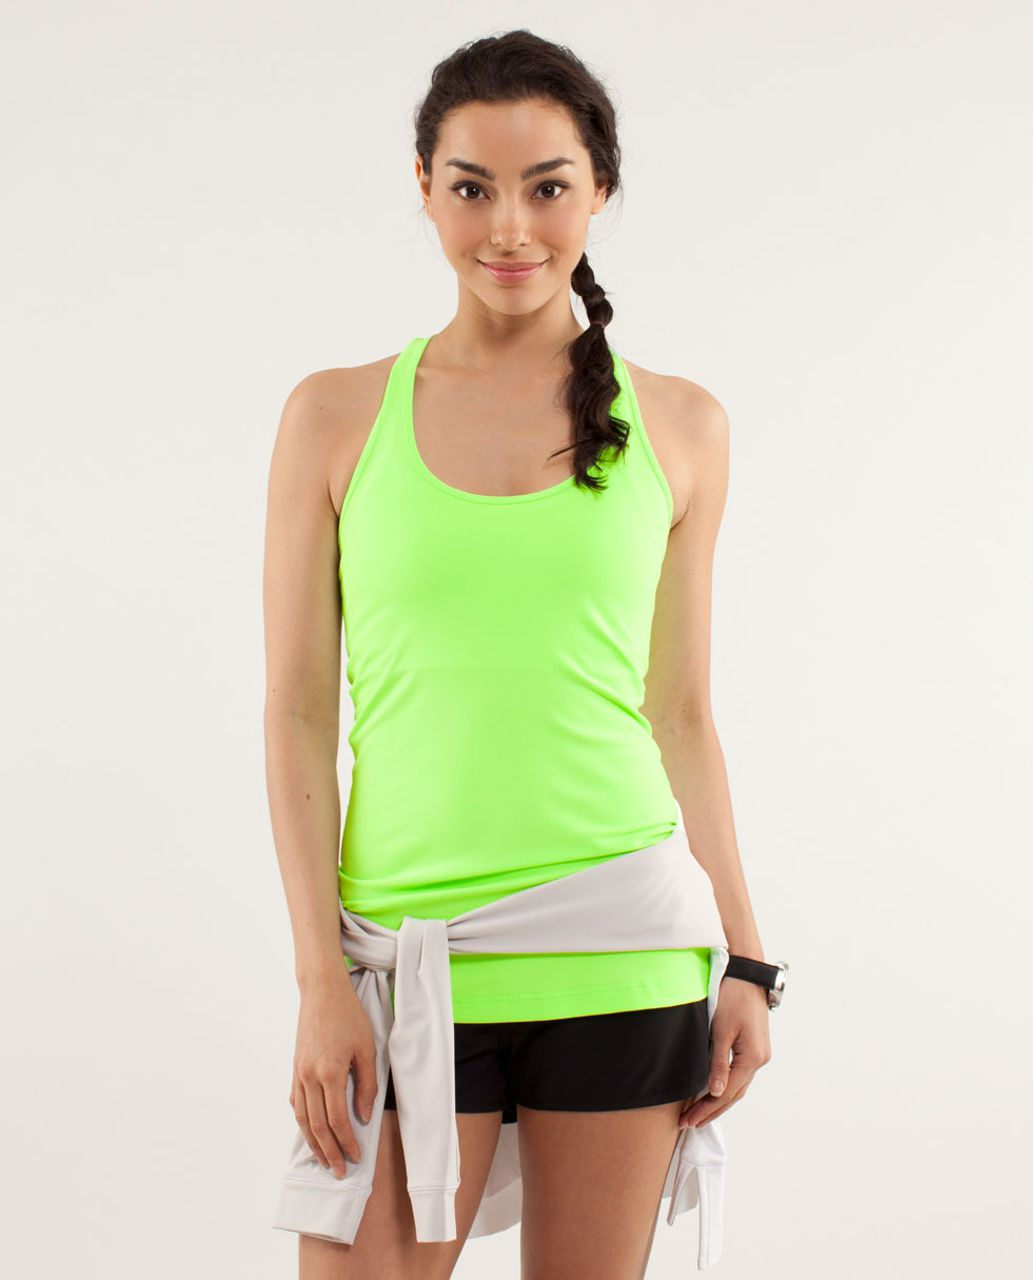 Lululemon Cool Racerback - Zippy Green